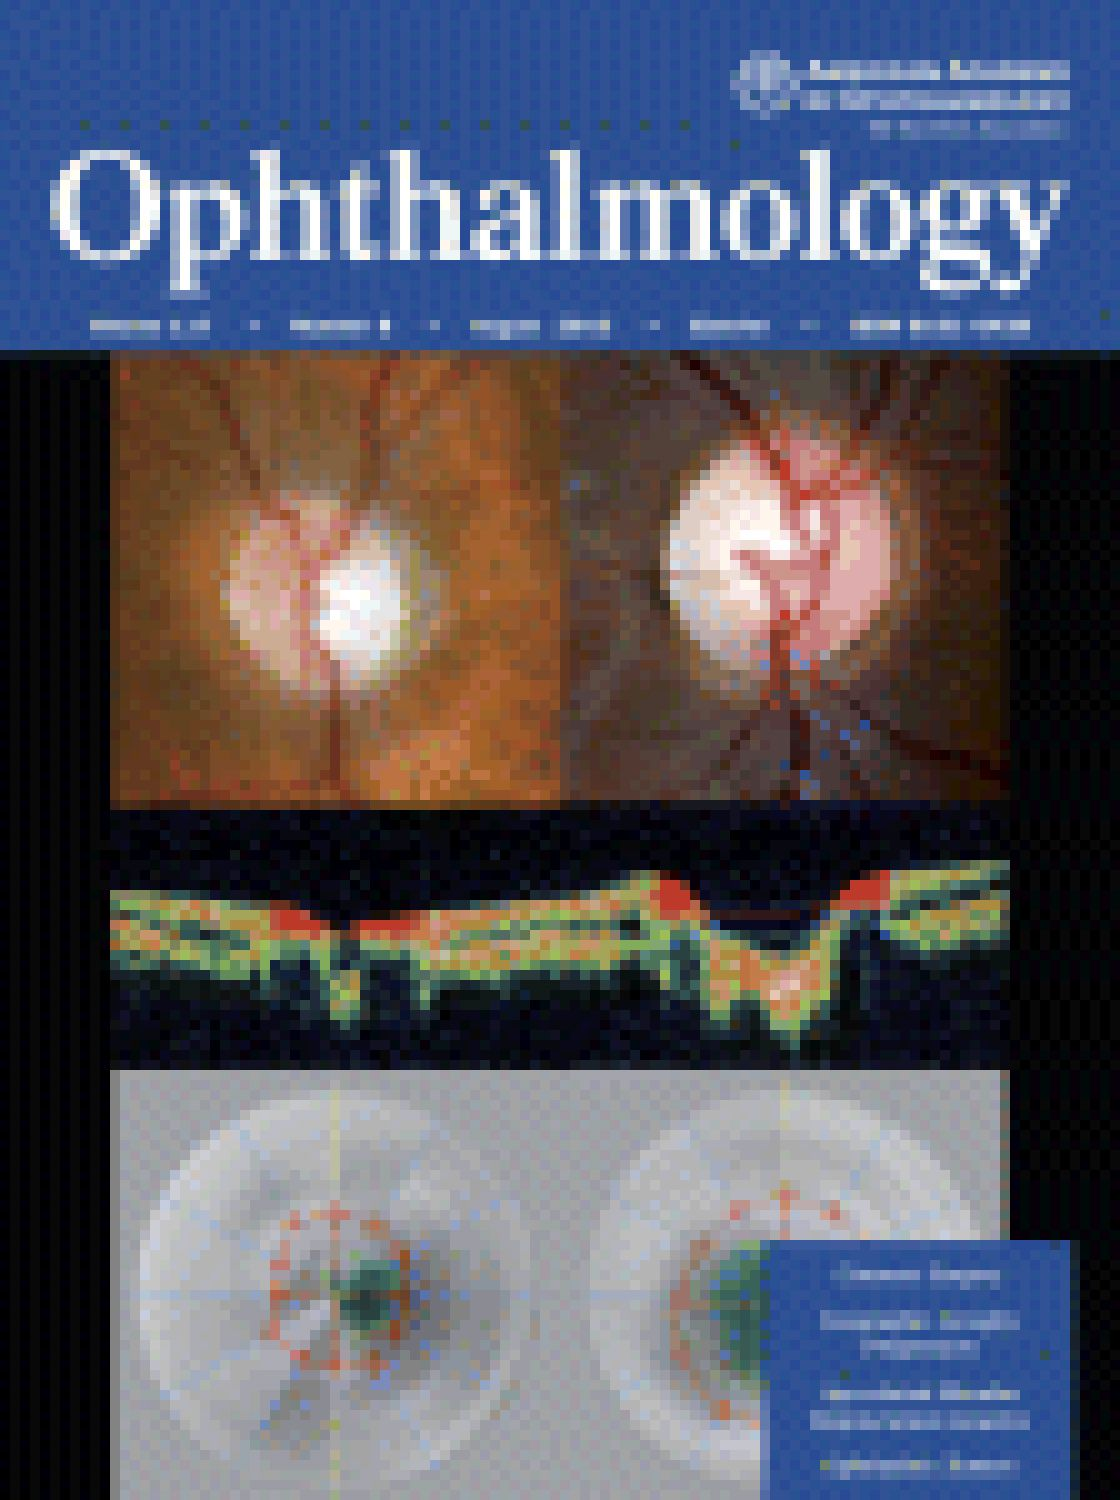 OPA1 mutations associated with dominant optic atrophy influence optic nerve head size